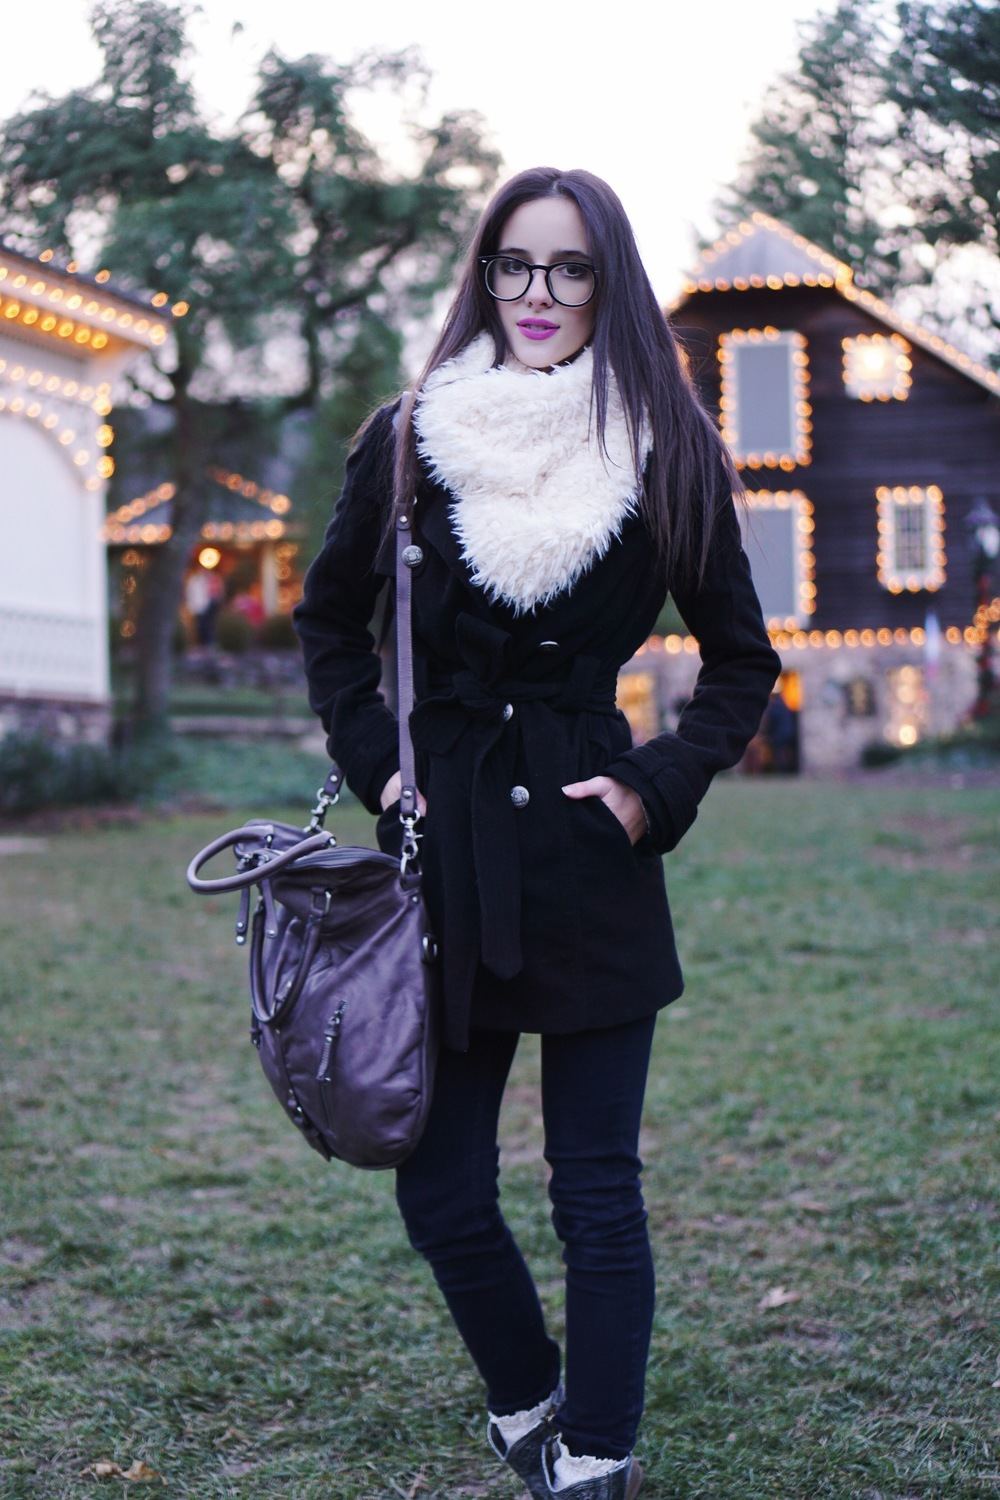 glasses:  urban outfitters  | faux fur infinity scarf:  urban outfitters  | coat:  urban outfitters  | jeans:  urban outfitters  | socks:   free people   | boots:  free people  | bag:  urban outfitters